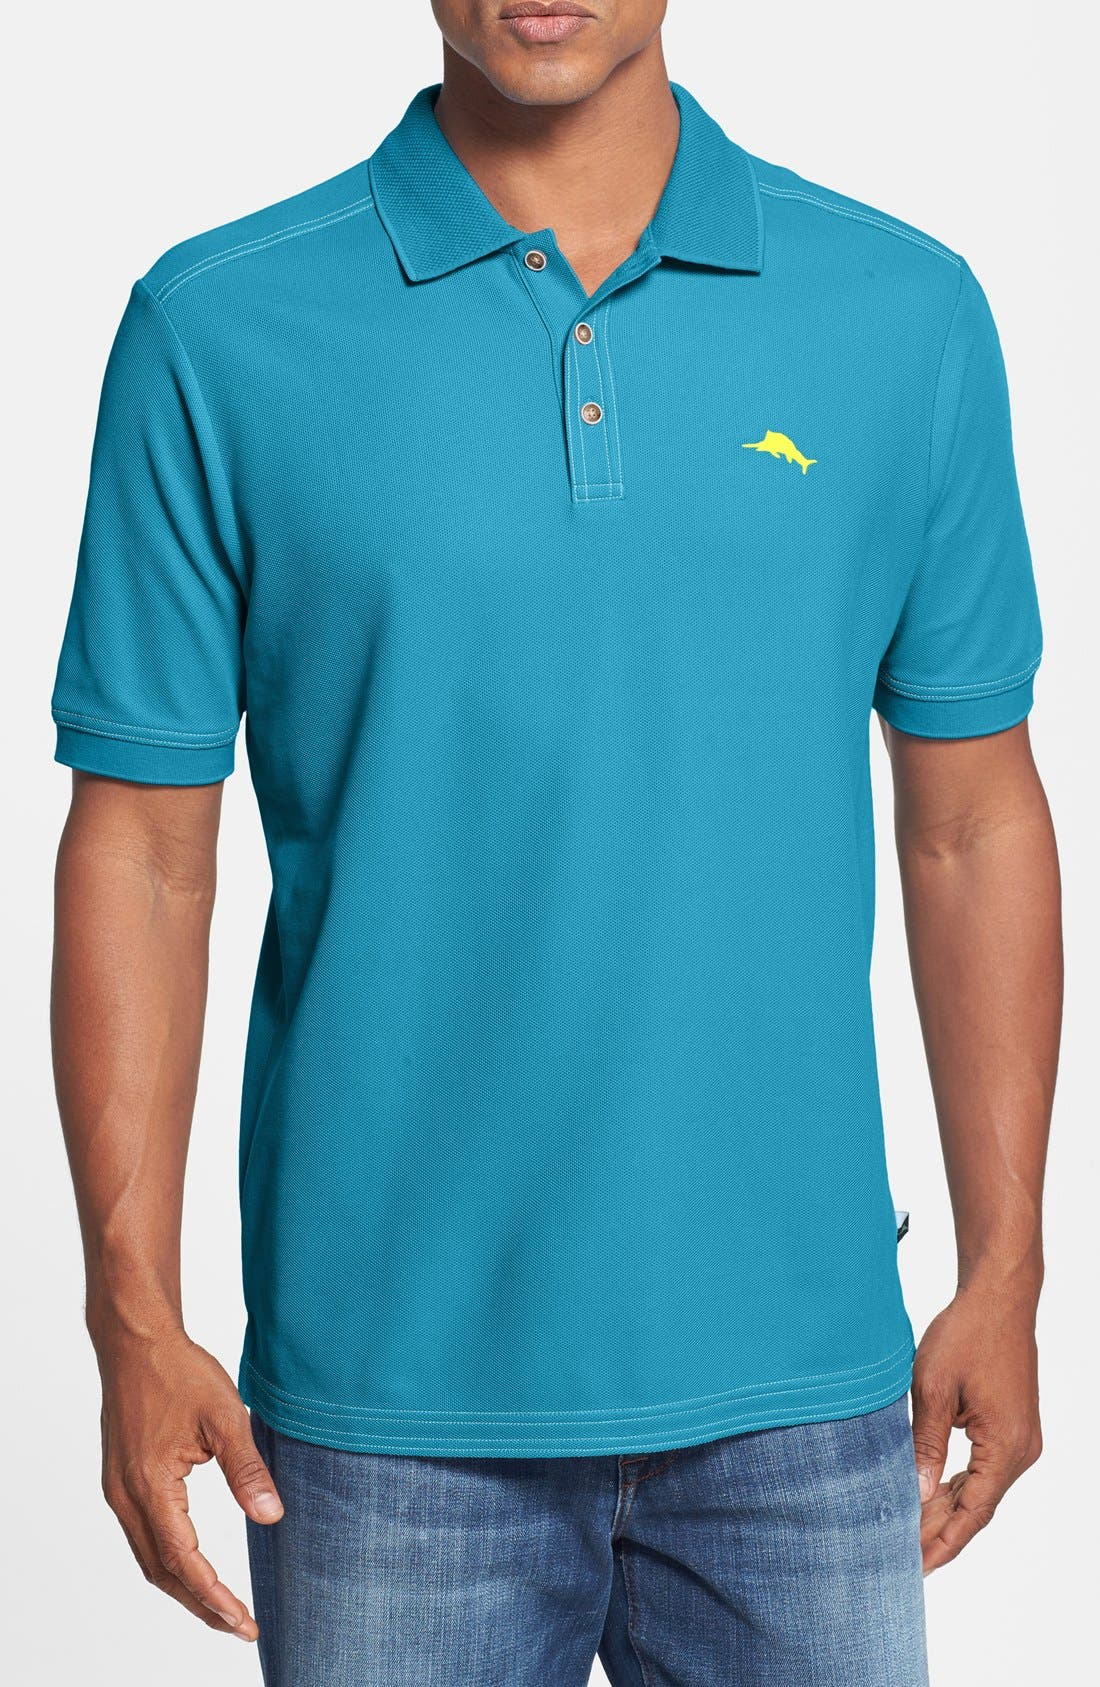 'The Emfielder' Original Fit Piqué Polo,                             Main thumbnail 66, color,